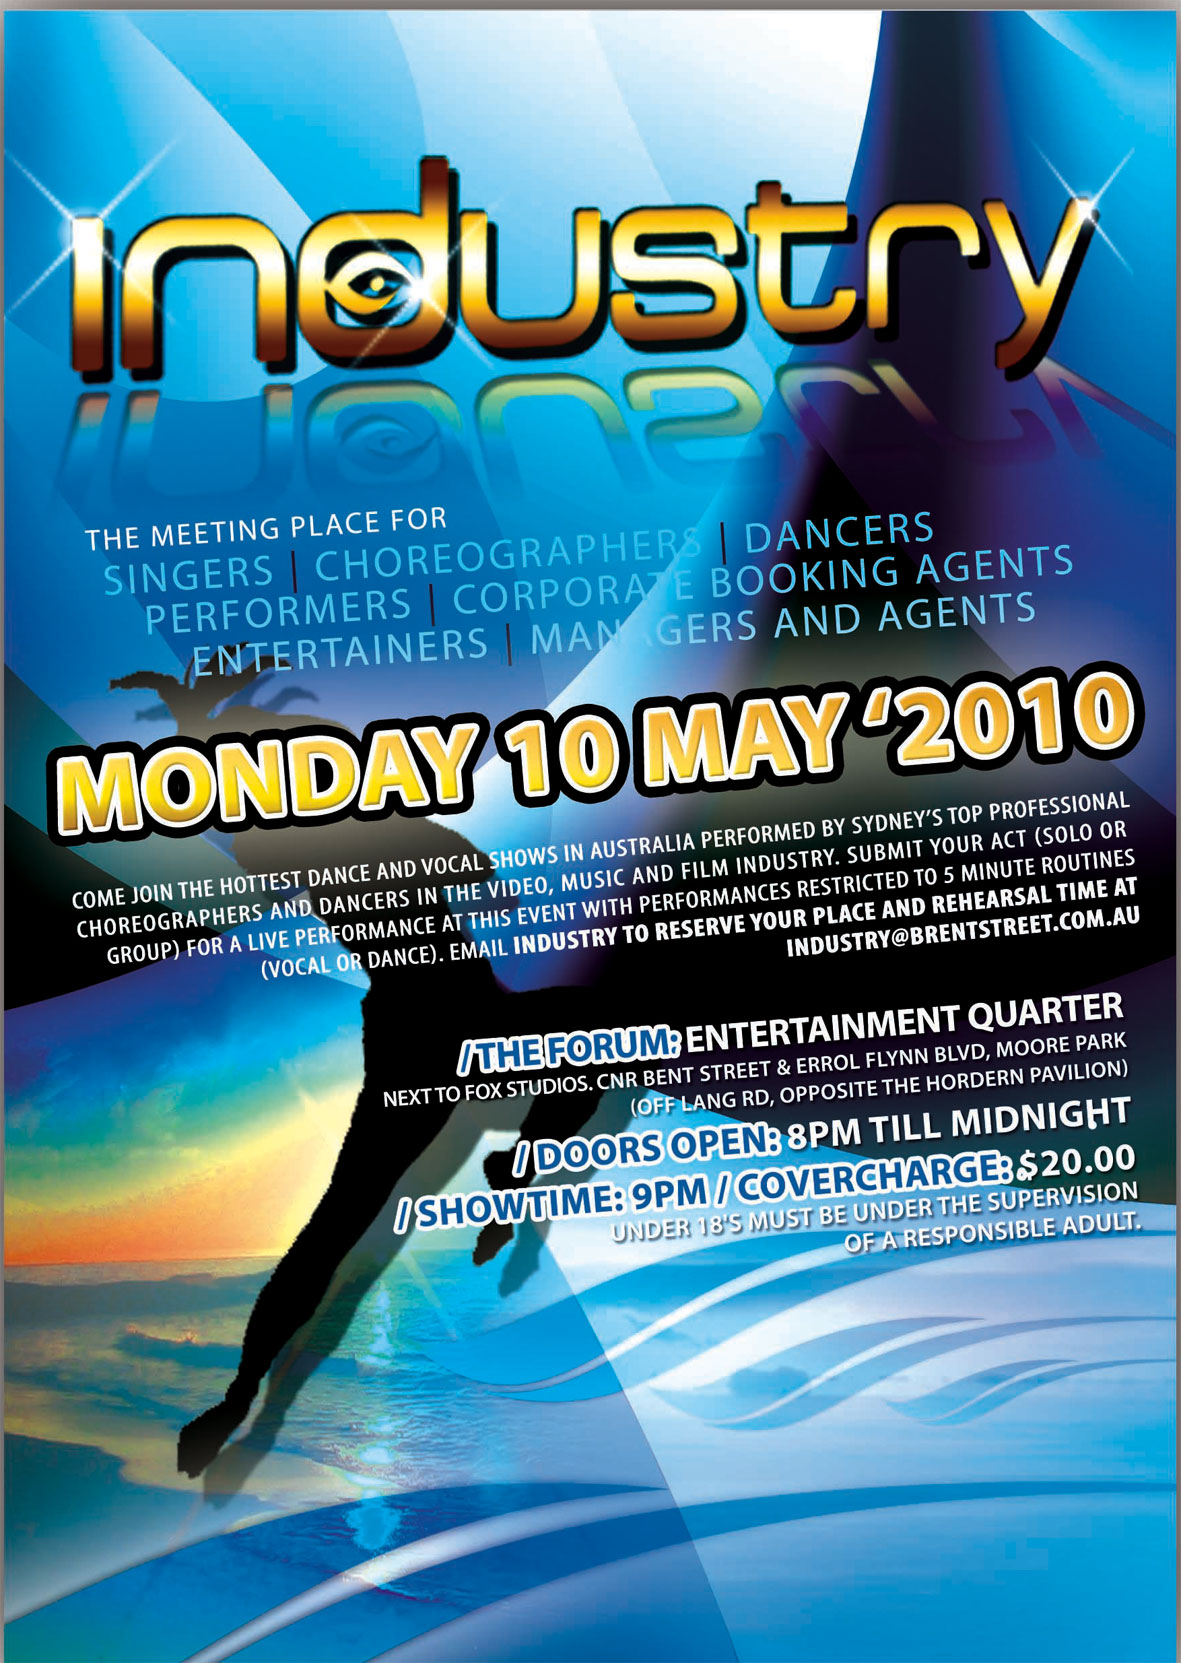 DANCE AT INDUSTRY SYDNEY